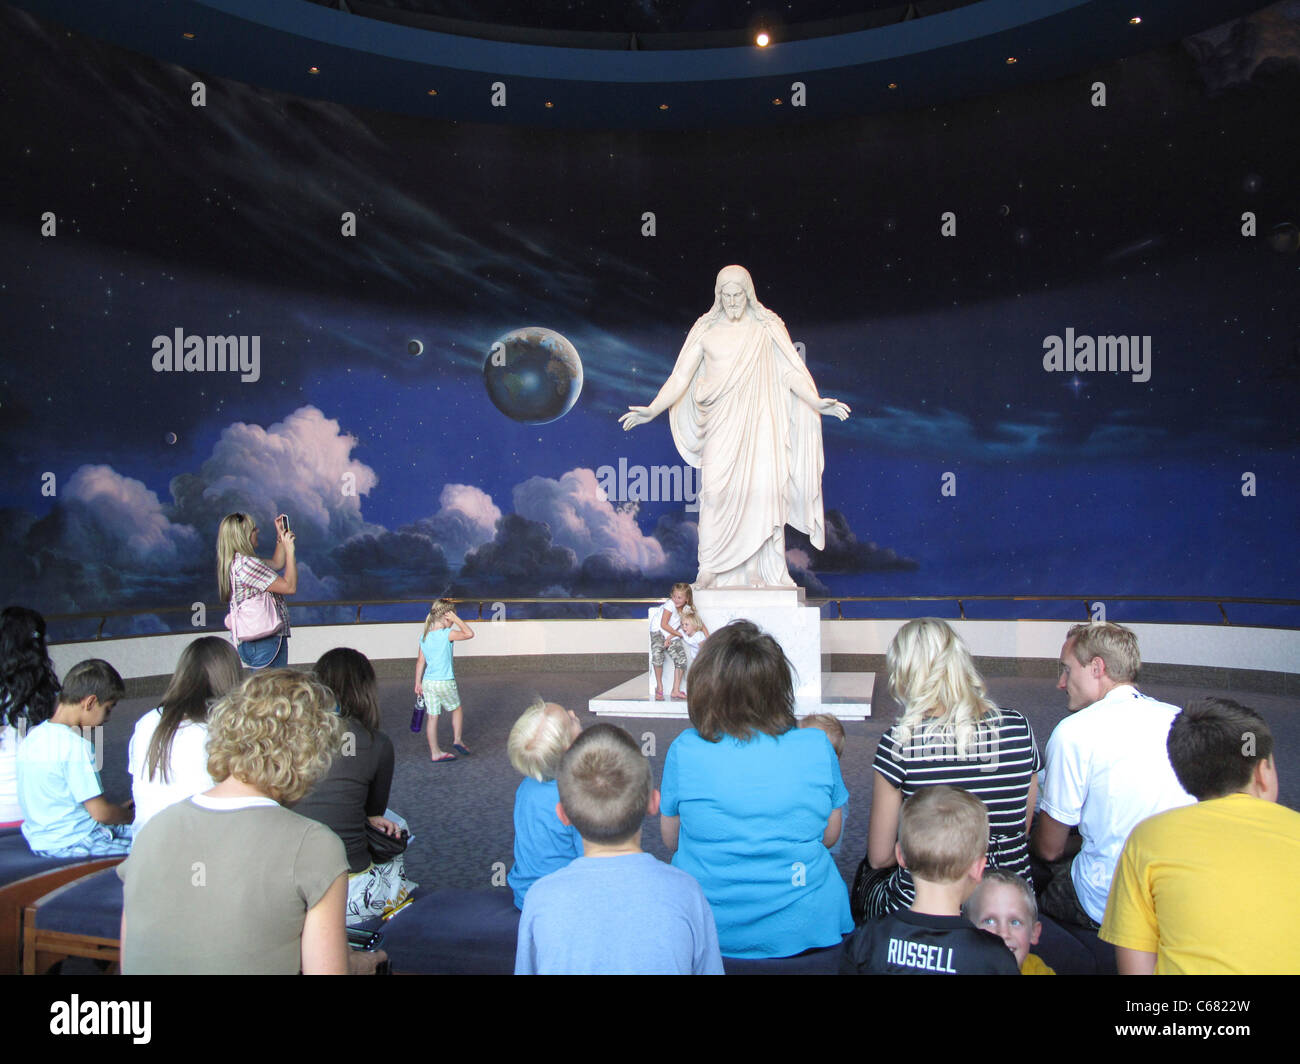 Christus Statue in the North Visitors Center on Temple Square, Salt Lake City, UT - Stock Image